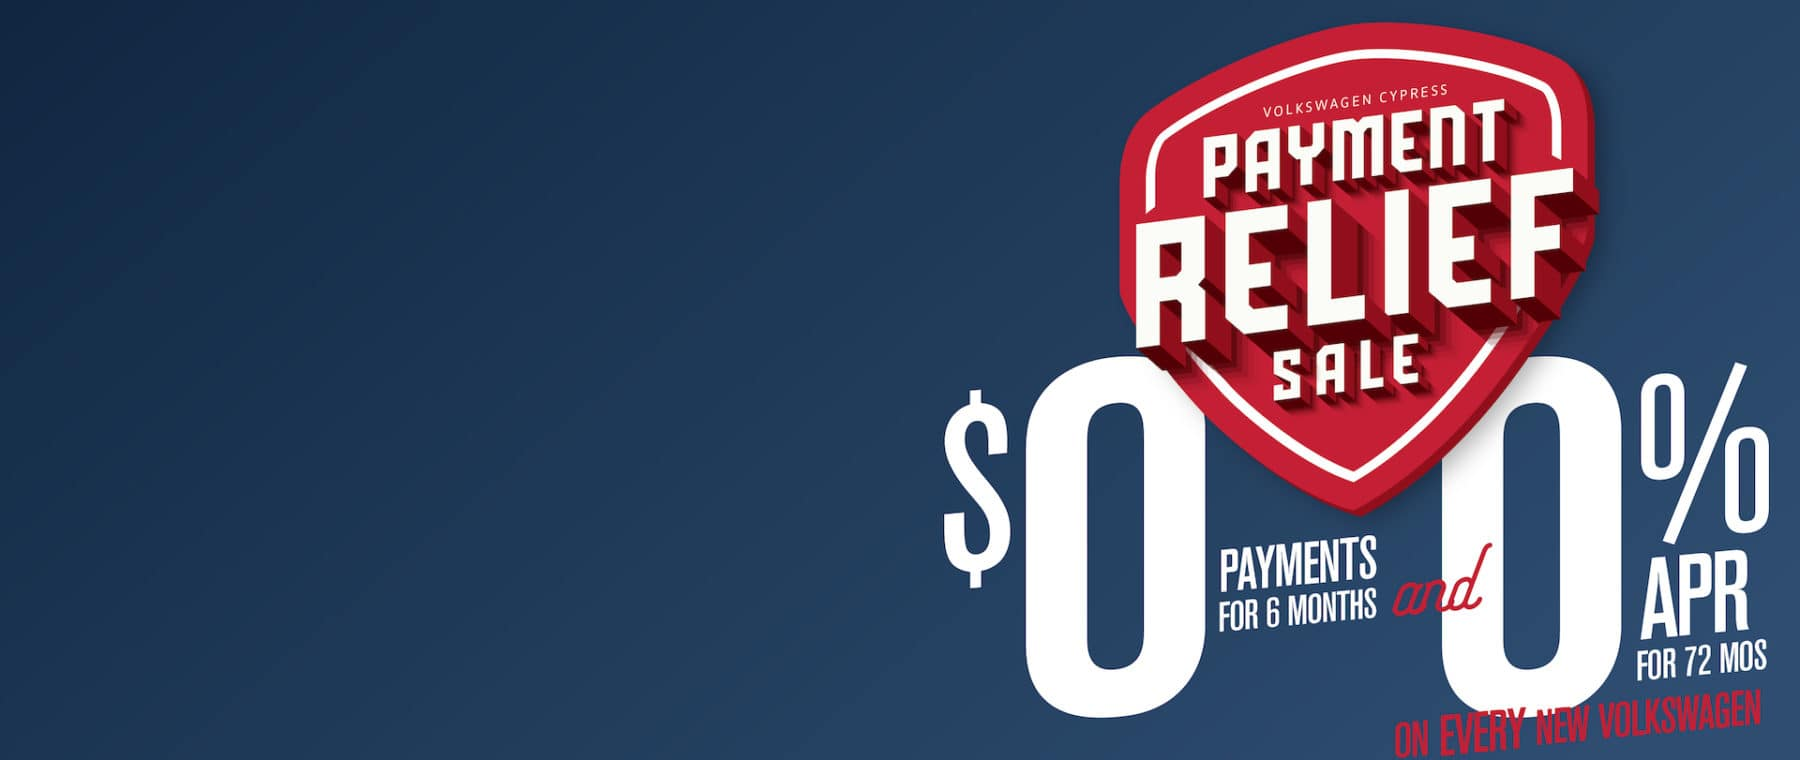 Payment Relief Sale! 0 Payments for 6 mos and 0% APR for 6 years!